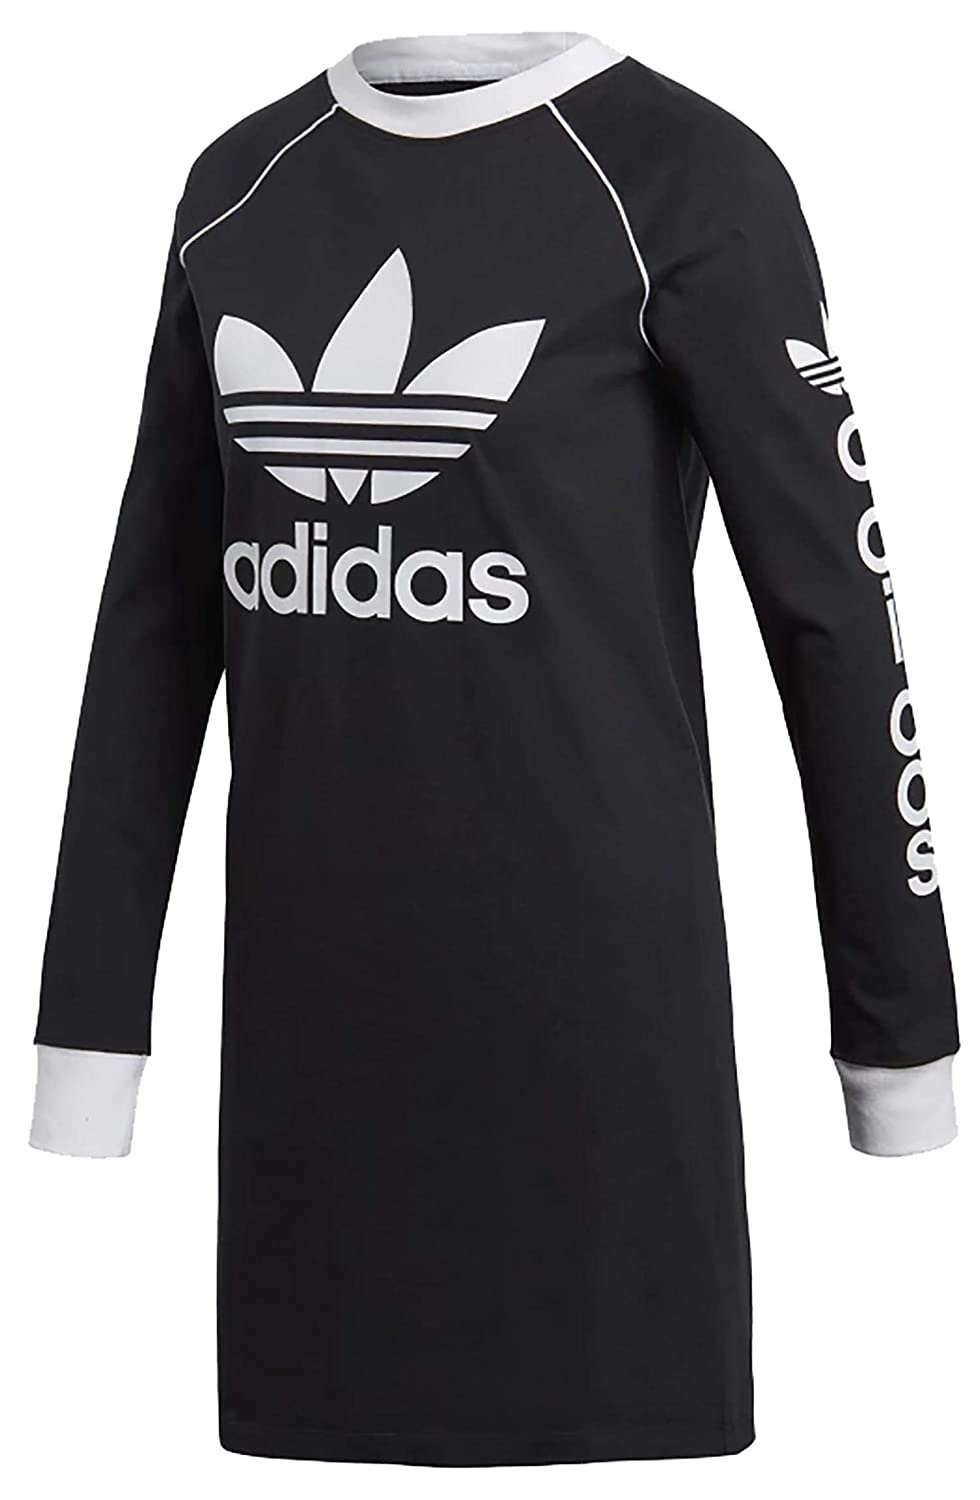 adidas ABITO ORIGINALS DH4706 DRESS BLACK MODA DONNA FASHION LIFESTYLE Taglia 42 DH4706_36